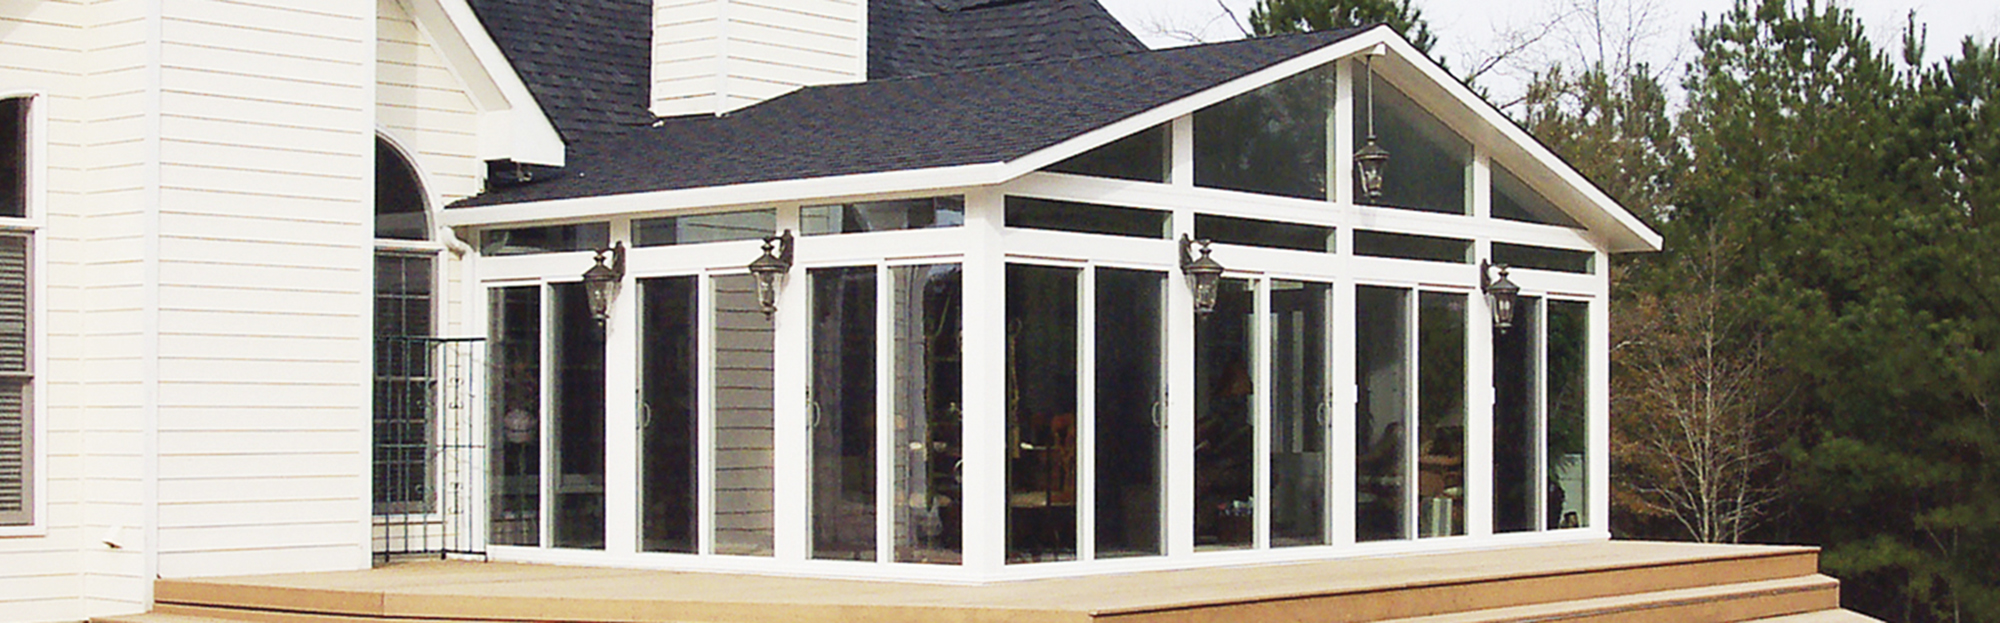 Betterliving Patio & Sunrooms